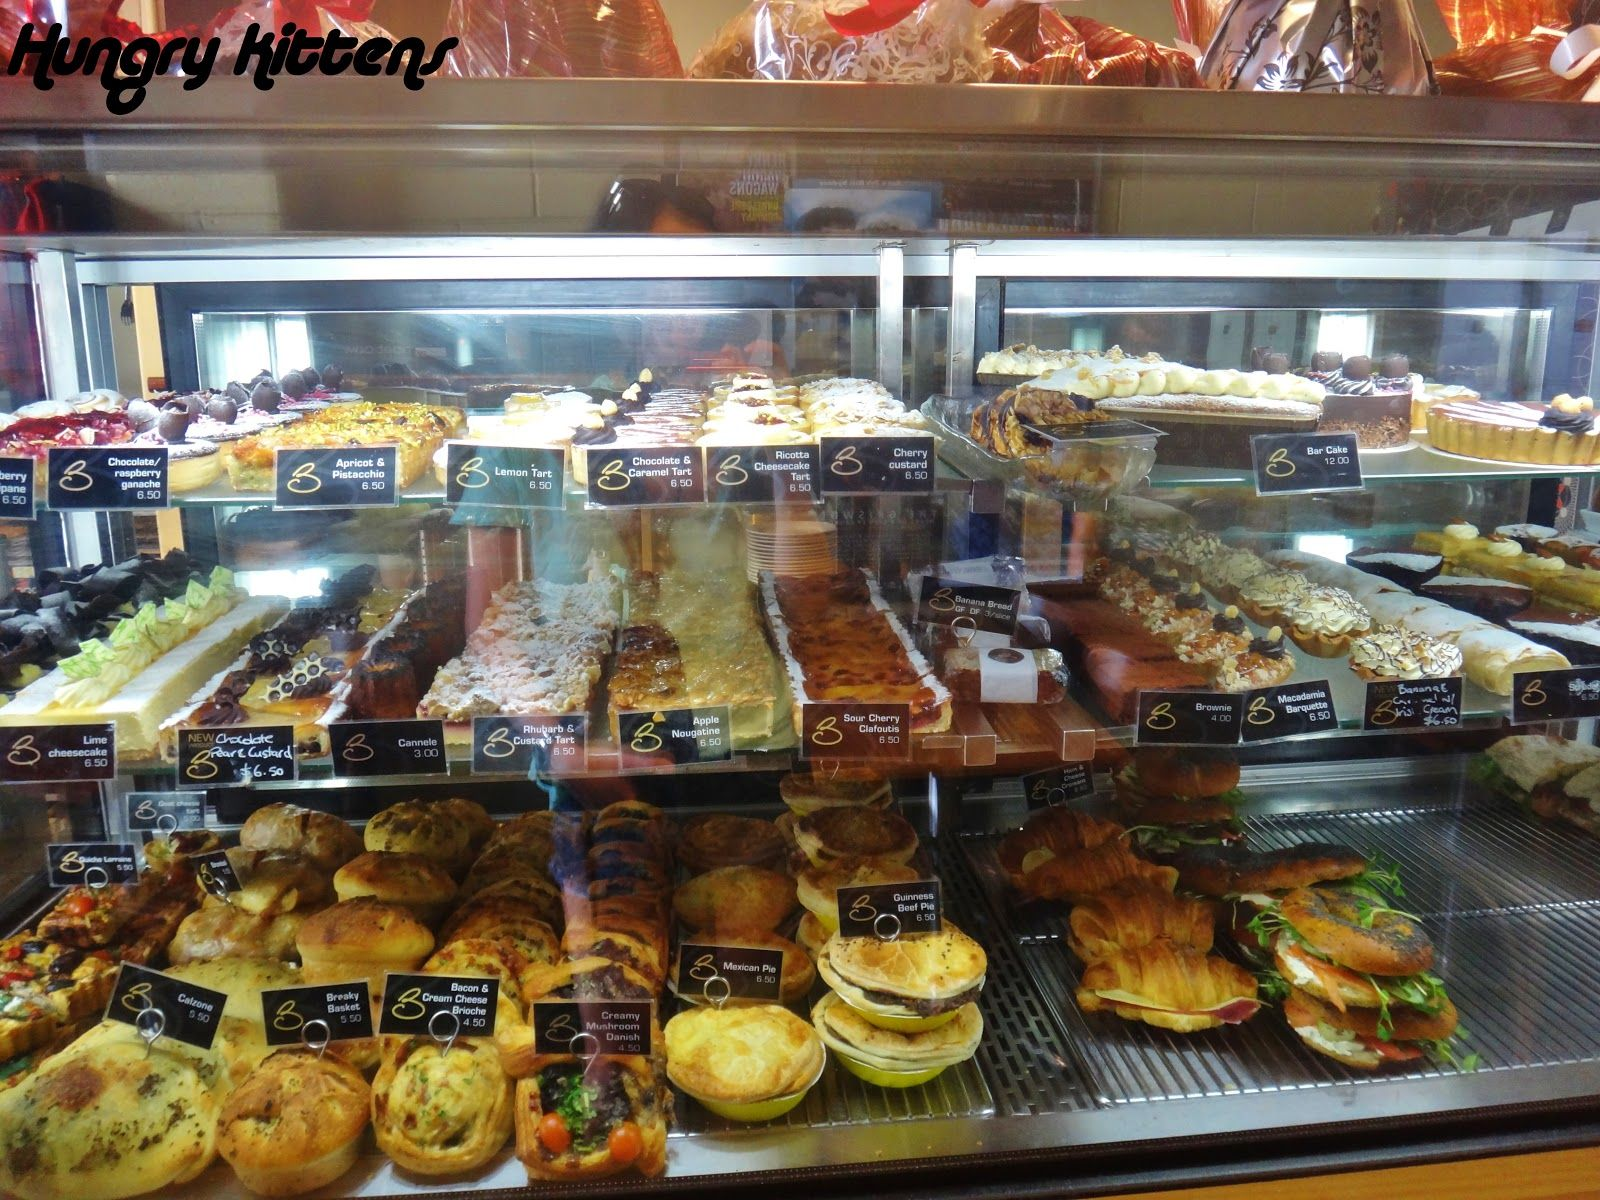 Decent Selection Of Cakes And Pastries Show Read-eat Items Filled